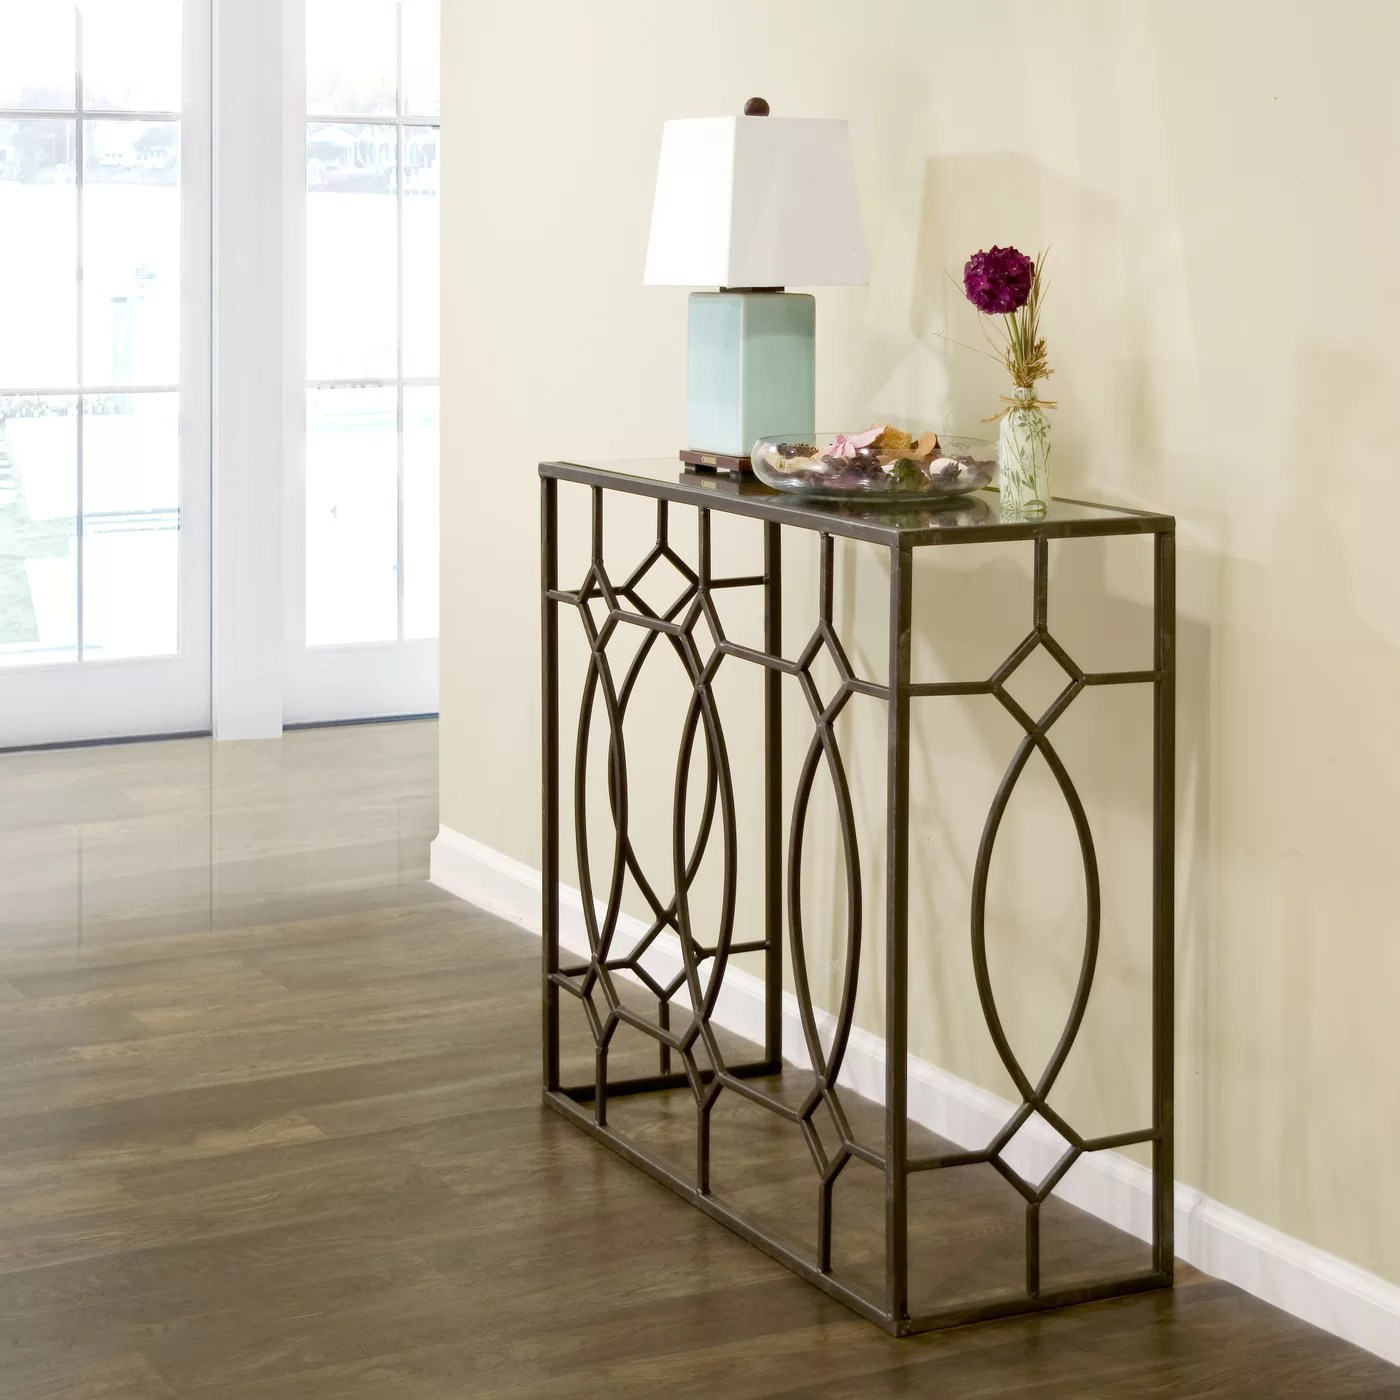 Glamour Home Decor Glamour Home Decor Aaralyn Mirrored Console Table